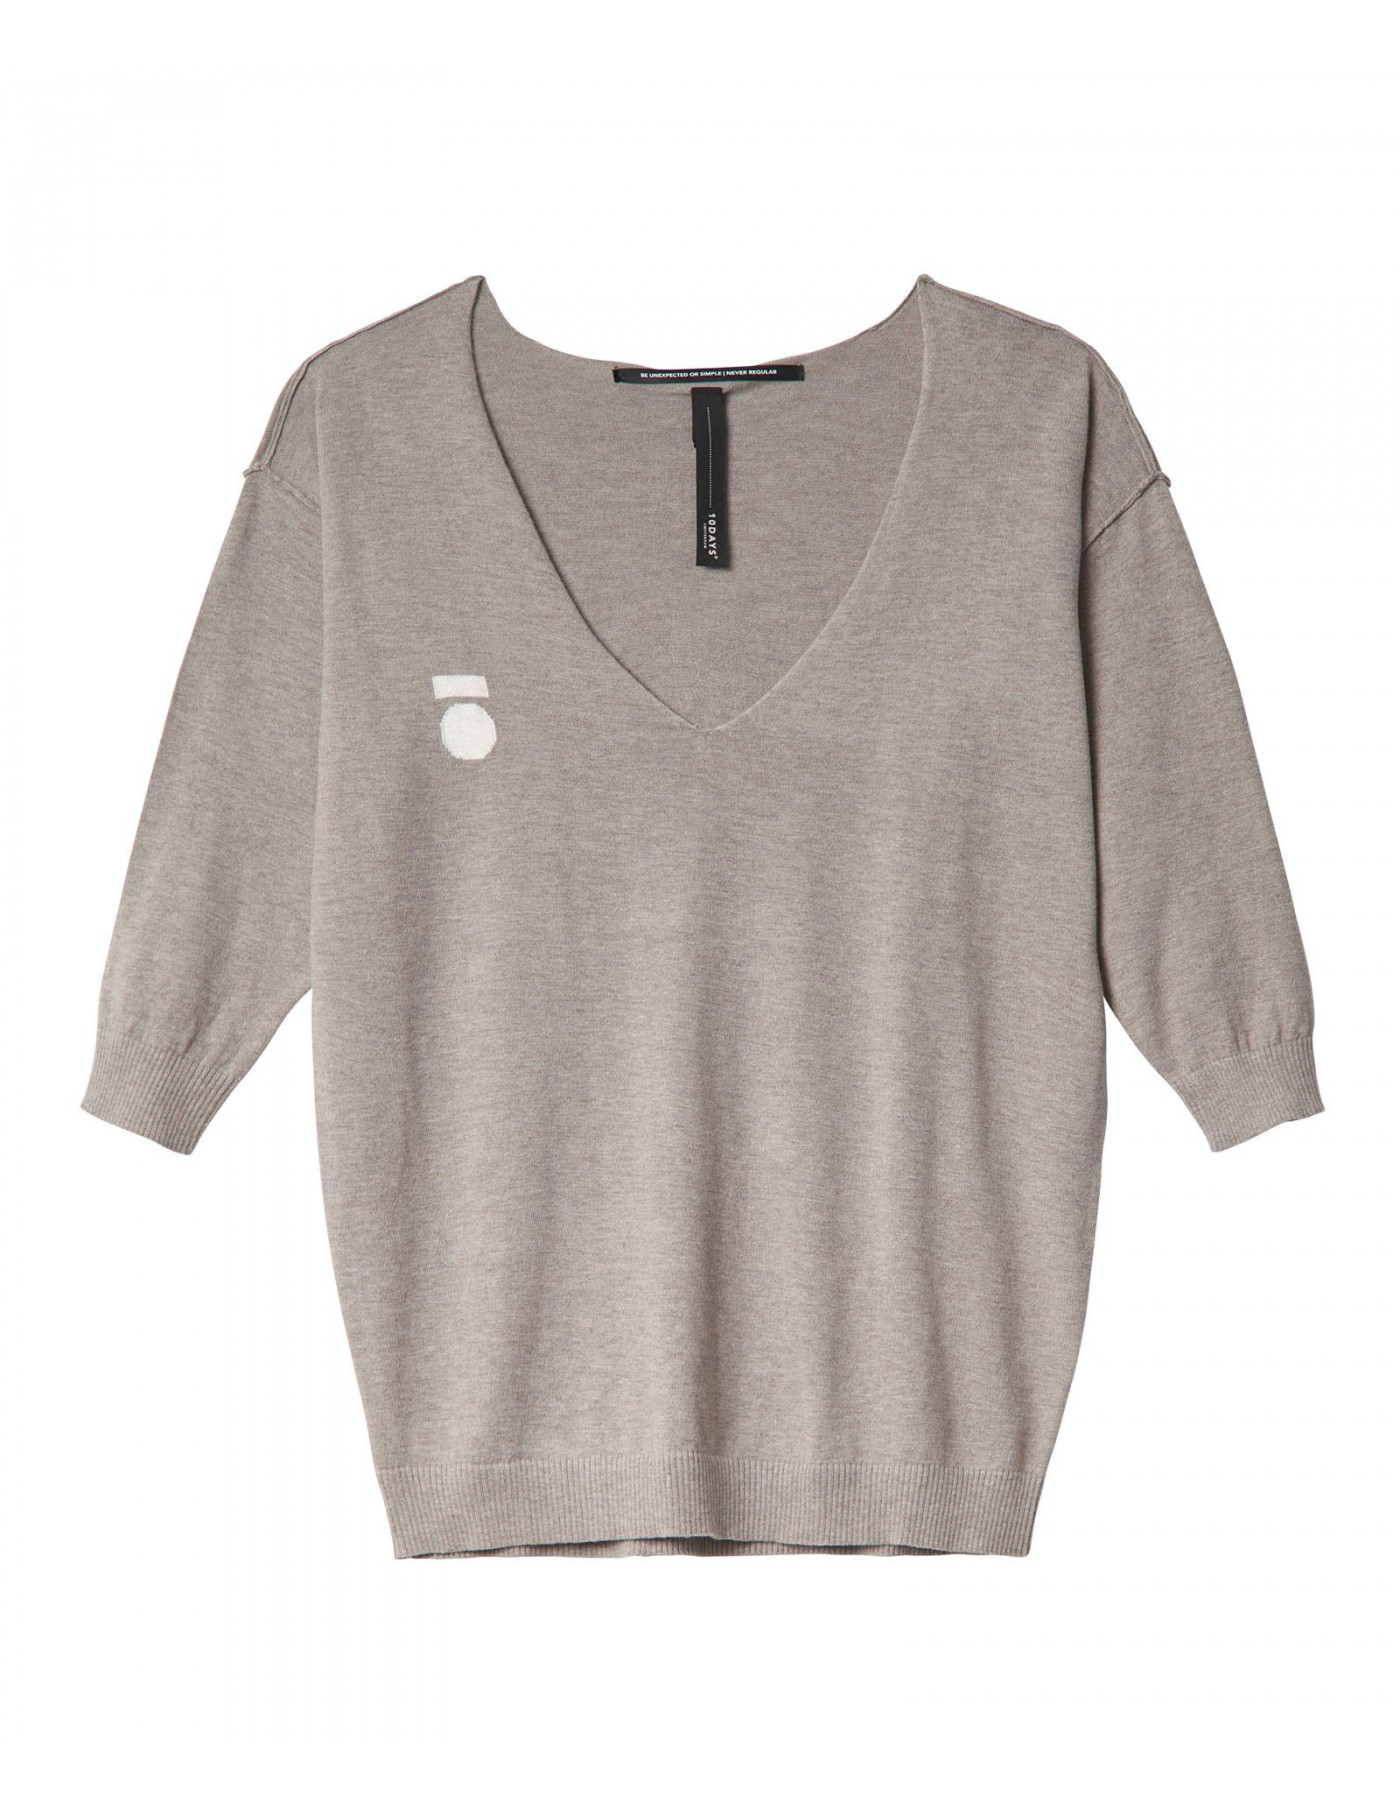 10DAYS V-Neck Sweater